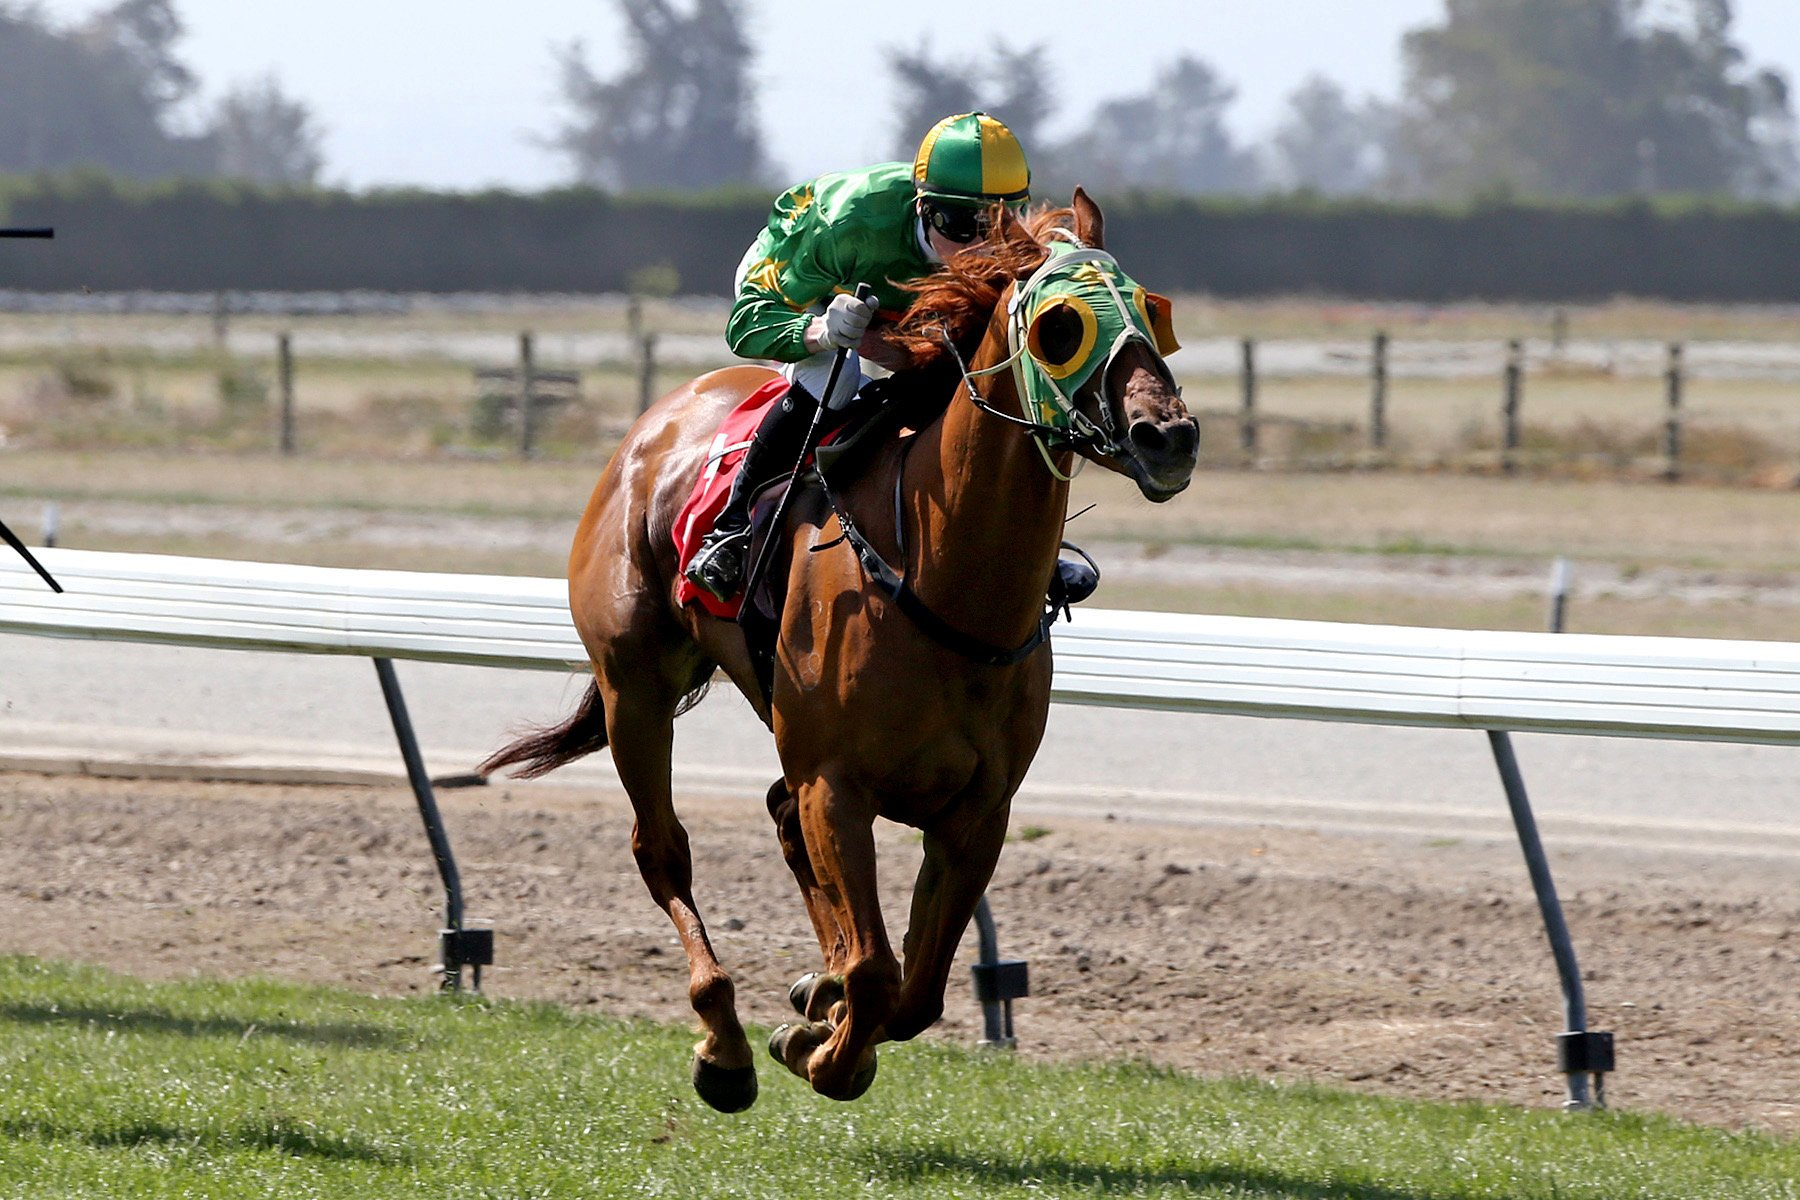 Wingatui-trained Tommy Tucker is the topweight in today's Timaru Cup. Photo from Race Images.